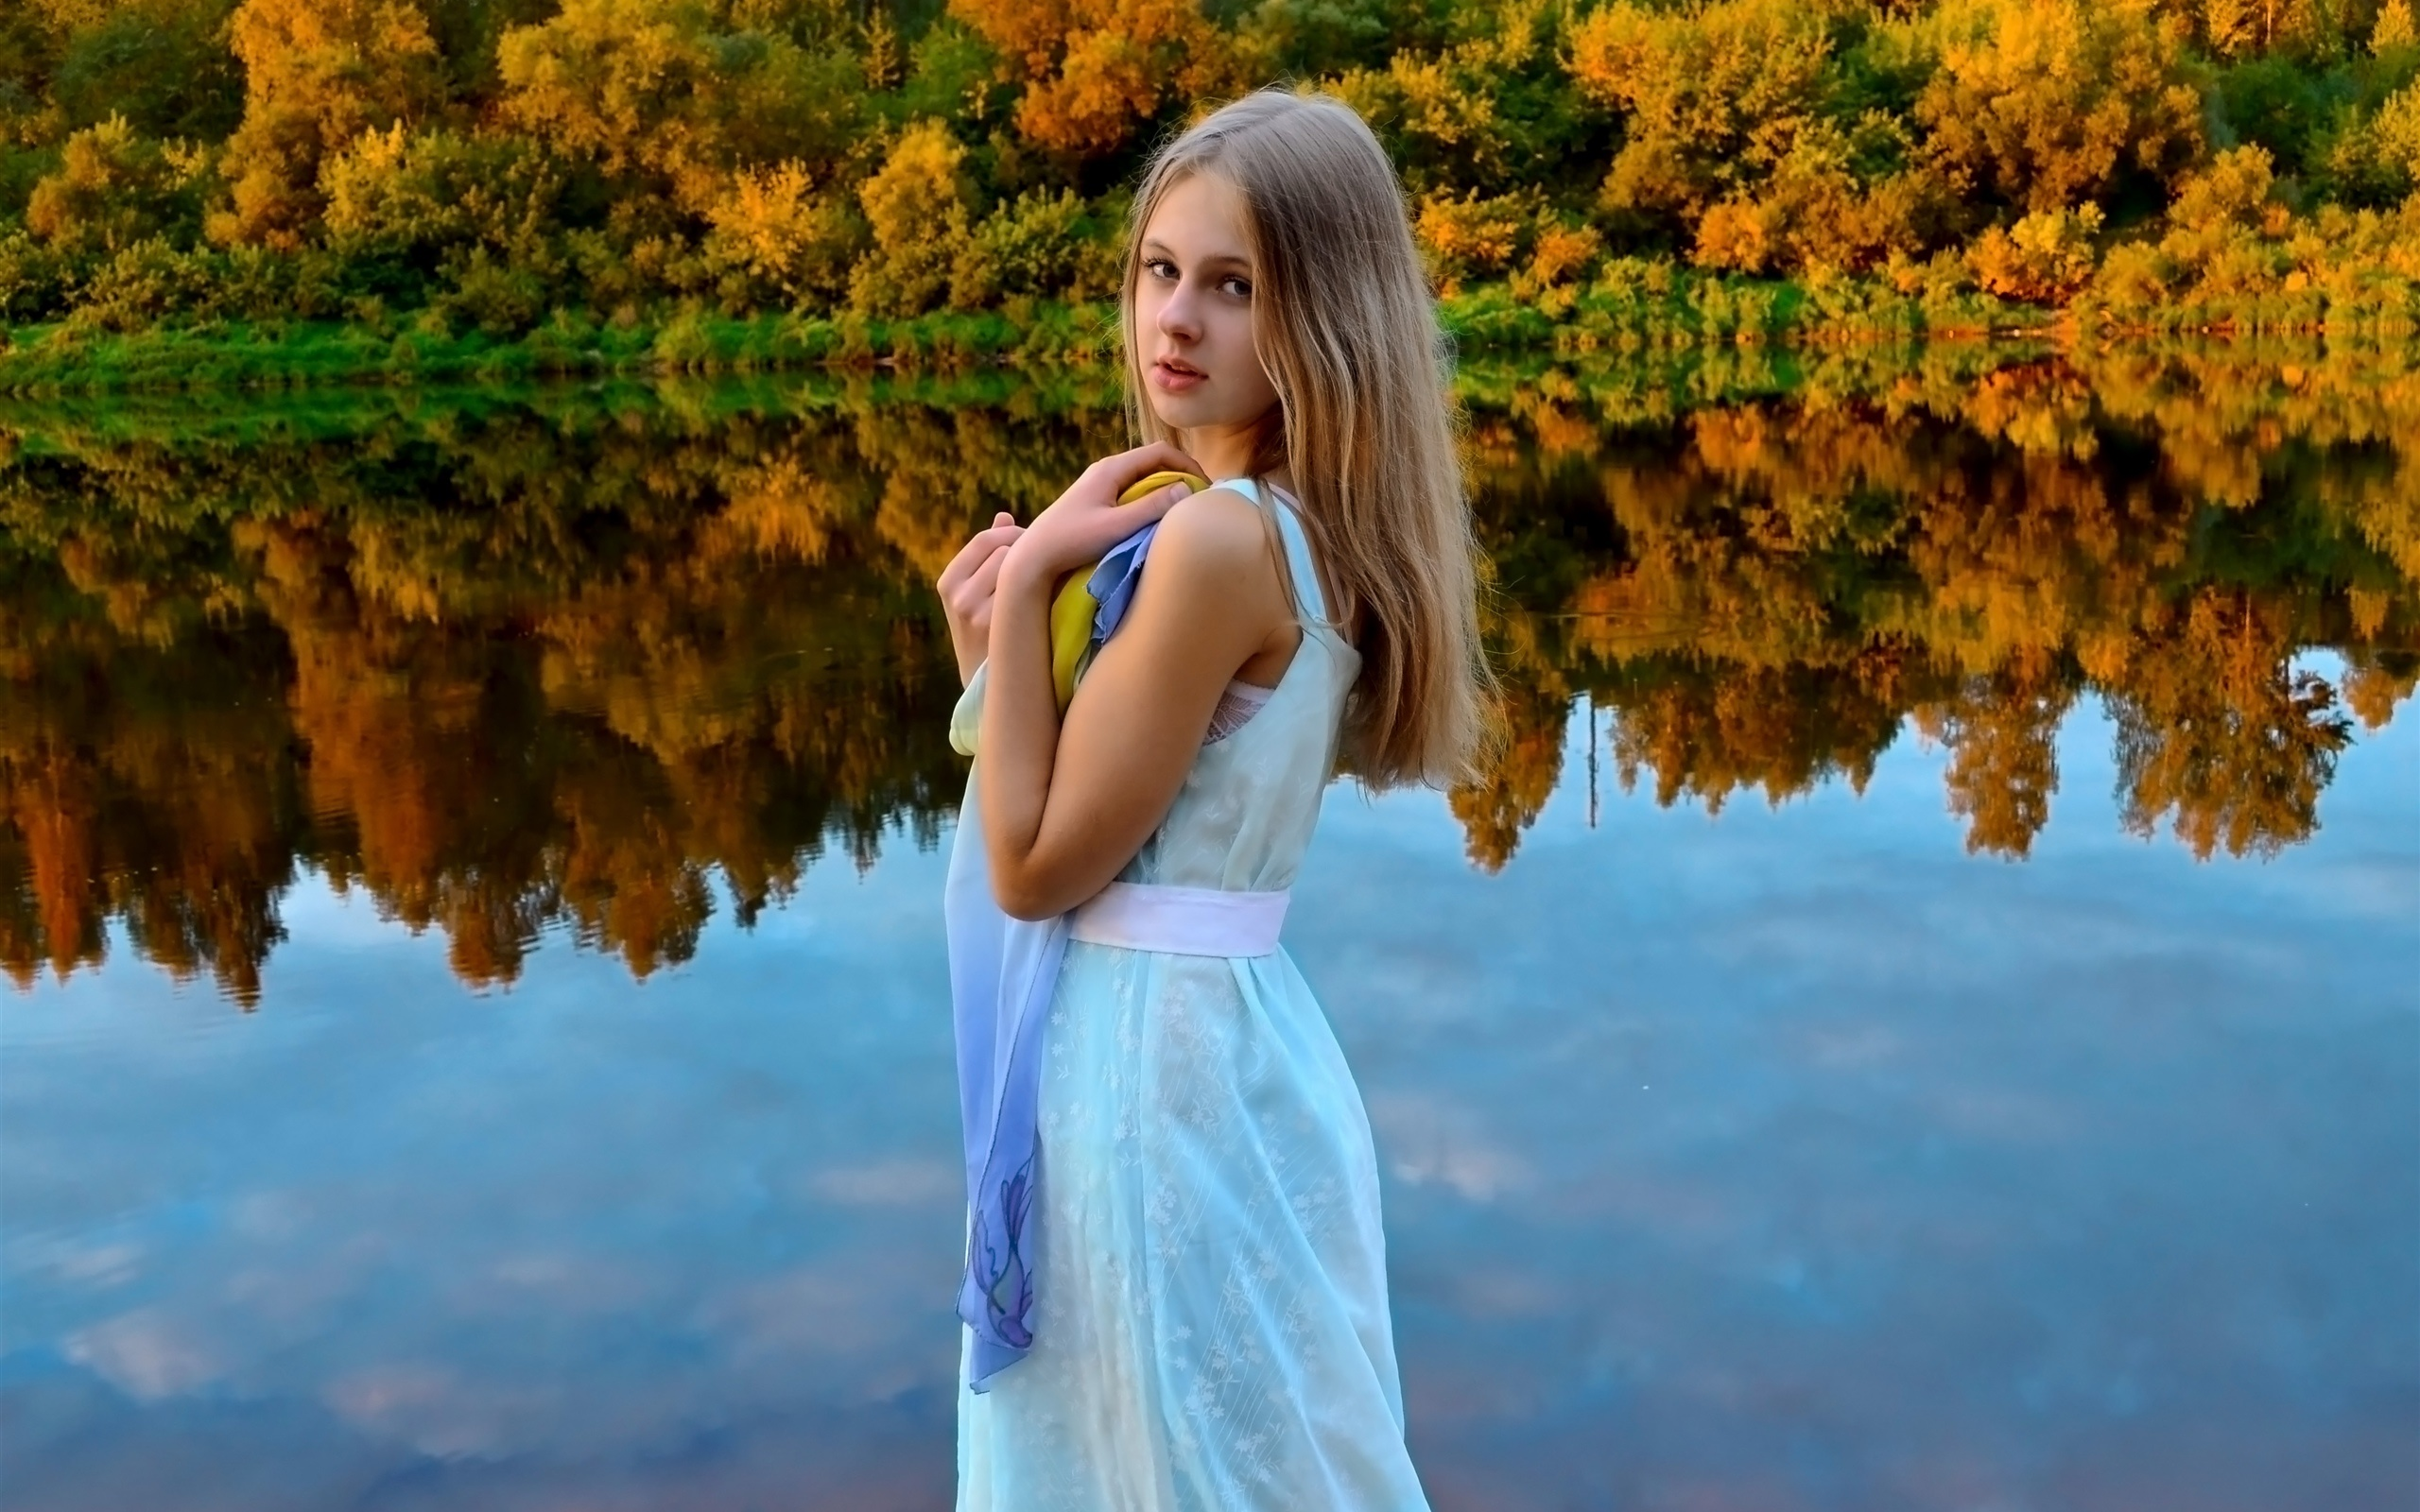 http://hdwall365.com/wallpapers/1601/White-dress-girl-blonde-eyes-lake-forest-water-reflection_2560x1600_wallpaper.jpg